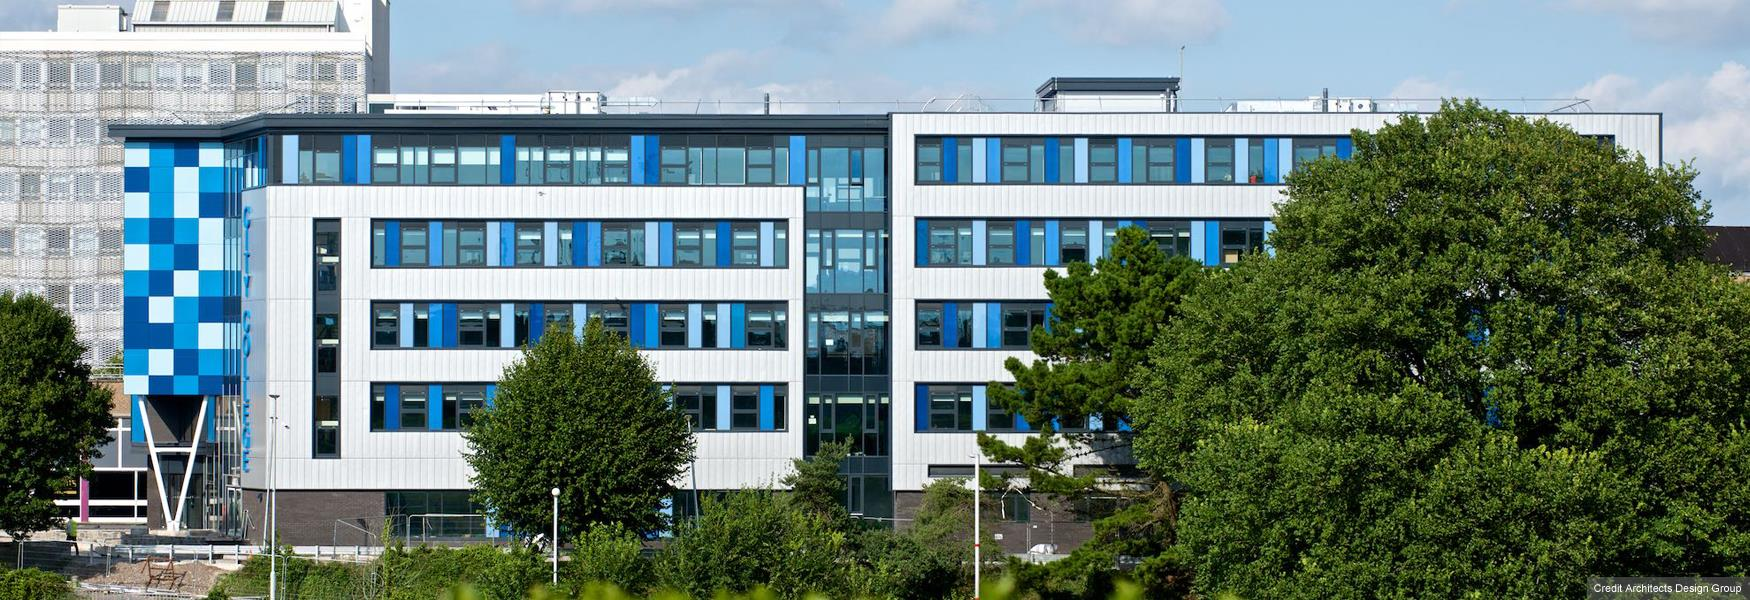 City College Plymouth's Regional Centre of Excellence for STEM